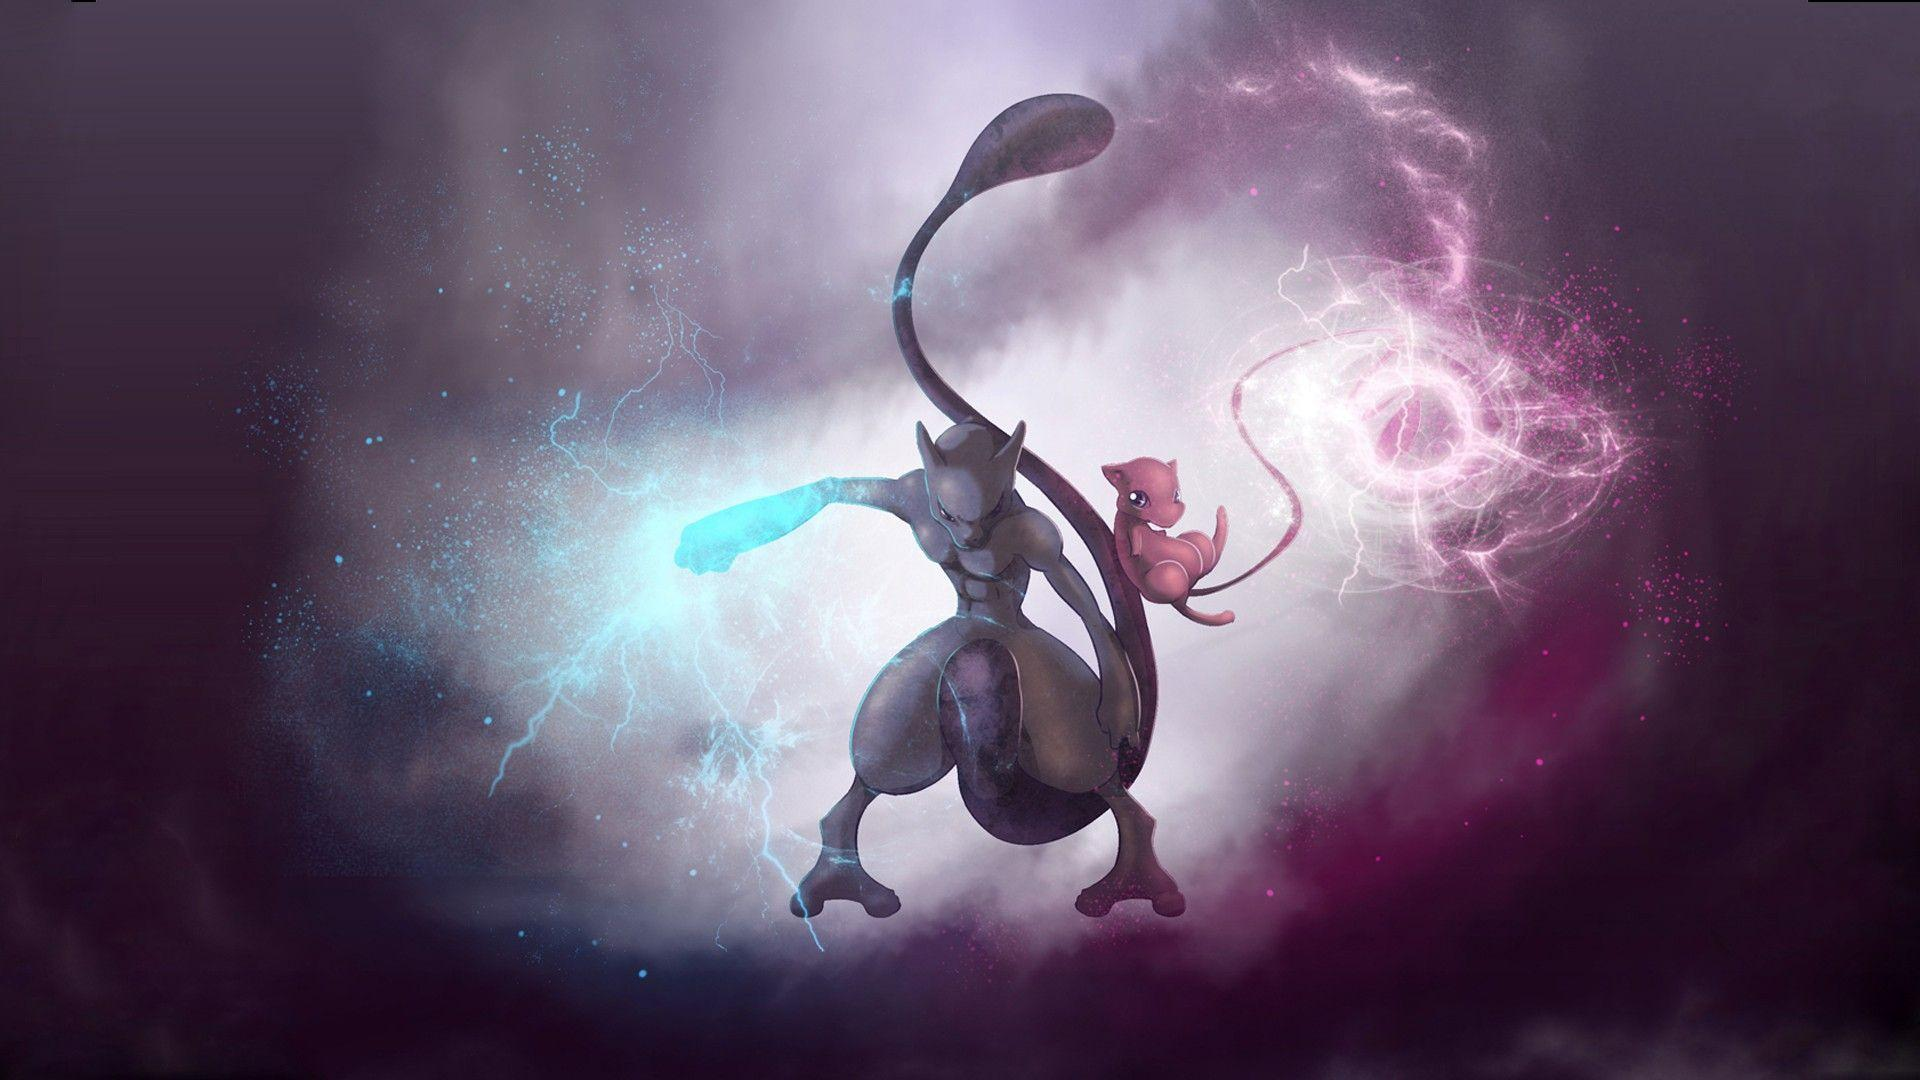 Hd wallpaper you need - Wallpapers For Mew Wallpaper